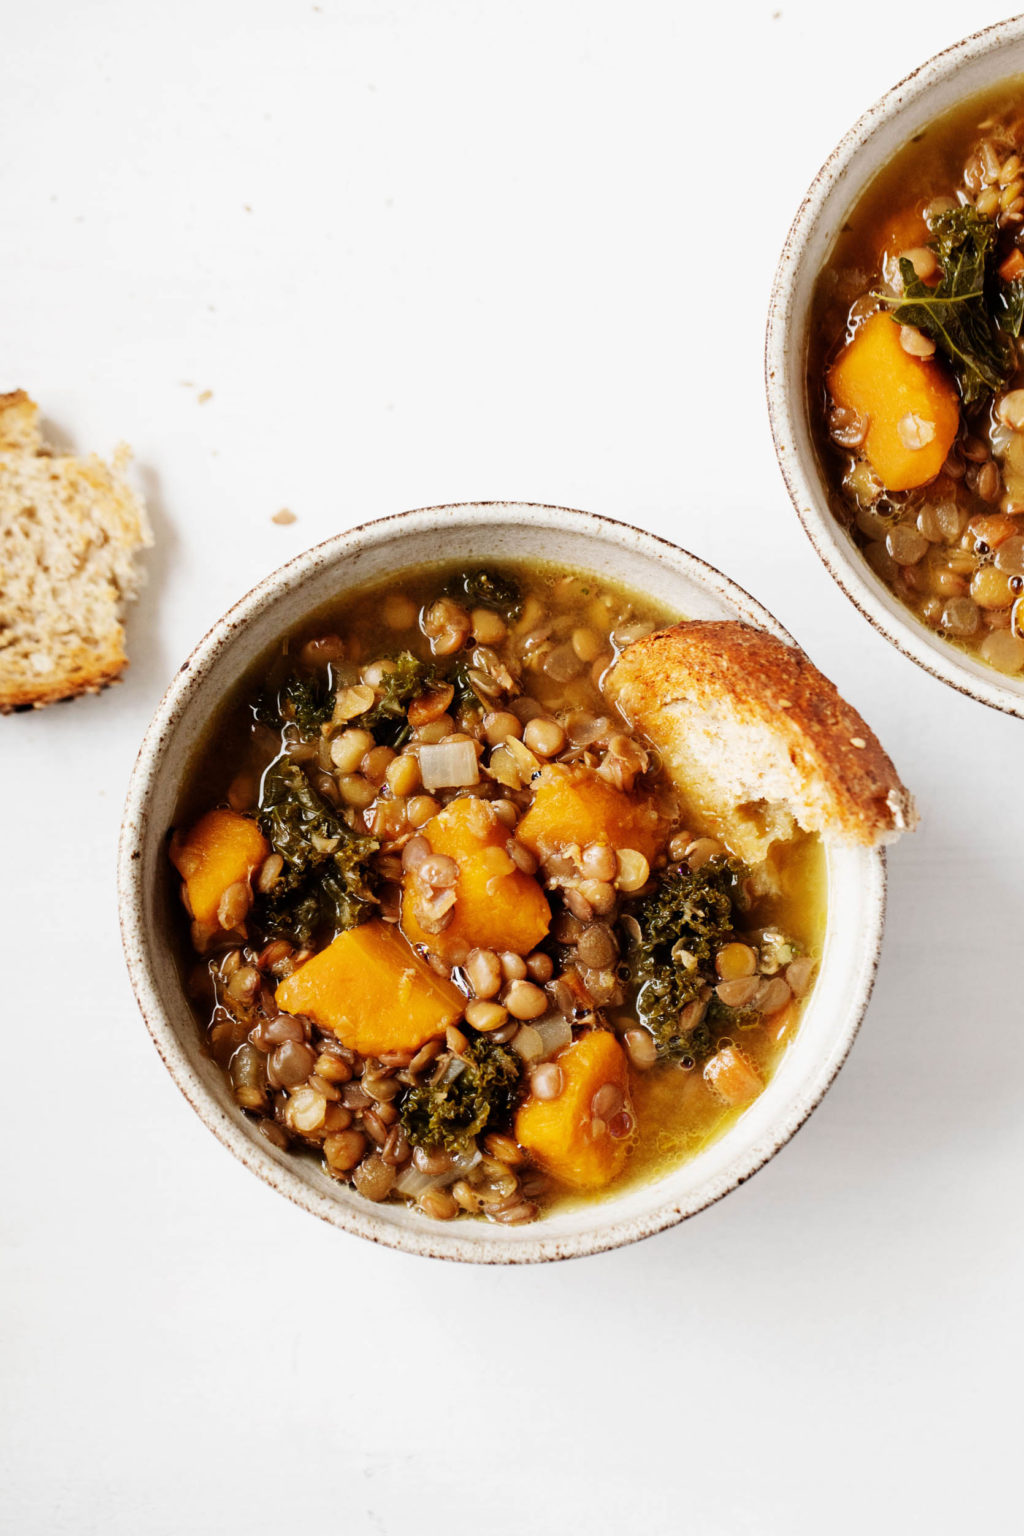 Two bowls of butternut kale lentil soup are laid on a white surface. A piece of toast rests nearby.